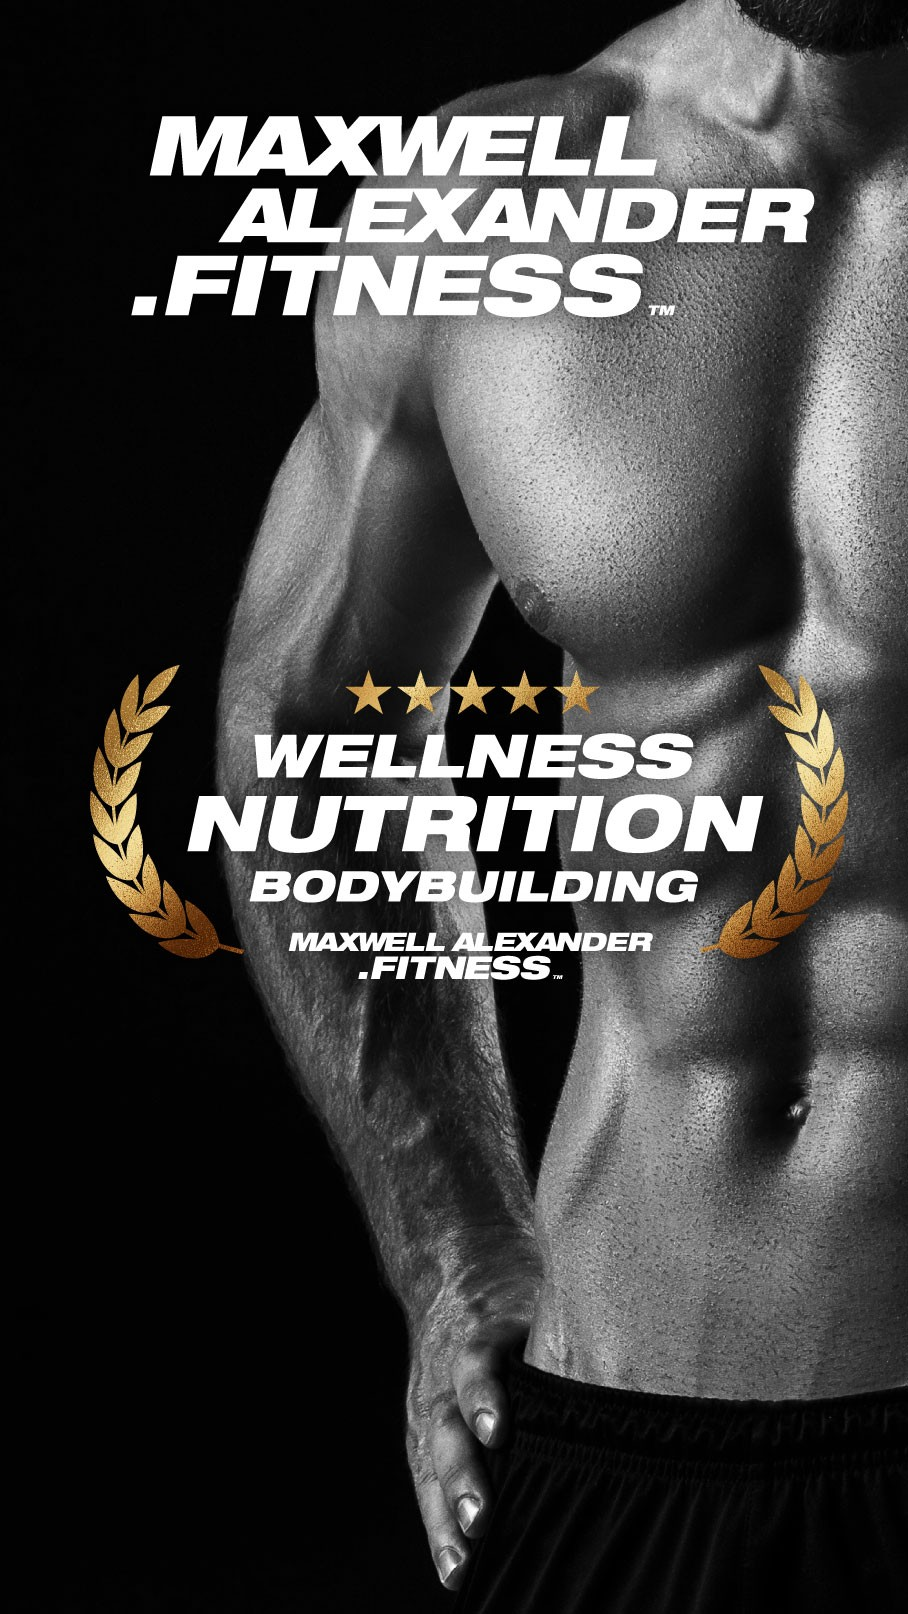 Maxwell Alexander Fitness - Wellness, Nutrition, Bodybuilding - Online Coaching Programs